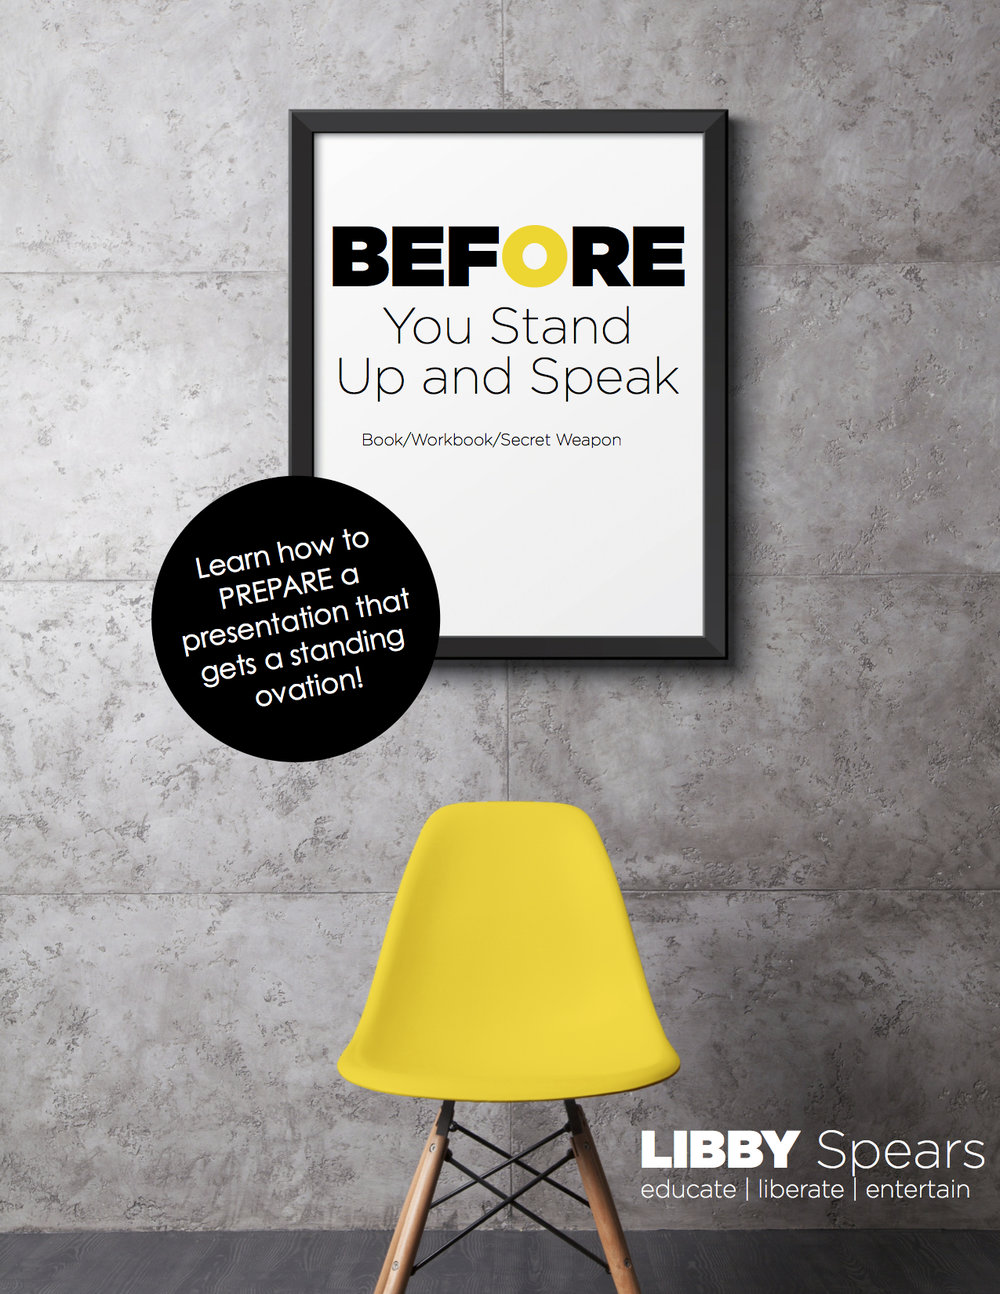 Before You Stand Up and Speak Book Cover Bravo cc Libby Spears